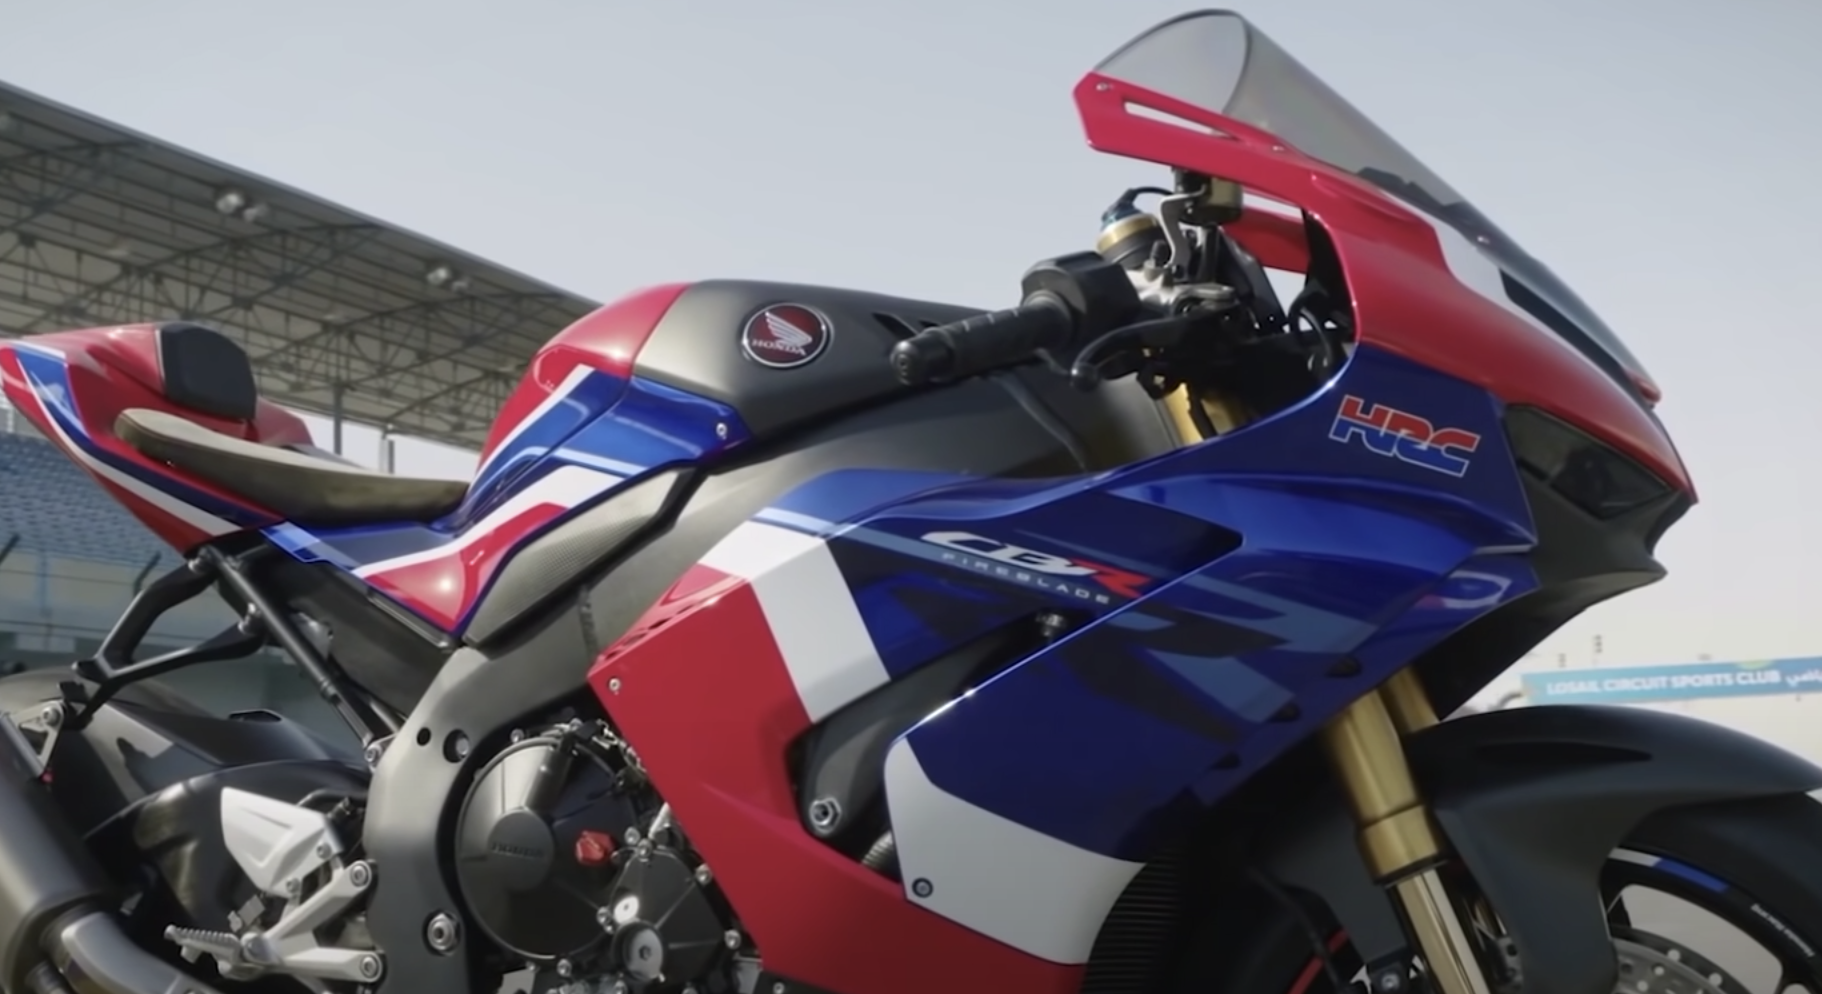 10 Fastest Motorcycles in the world 2021